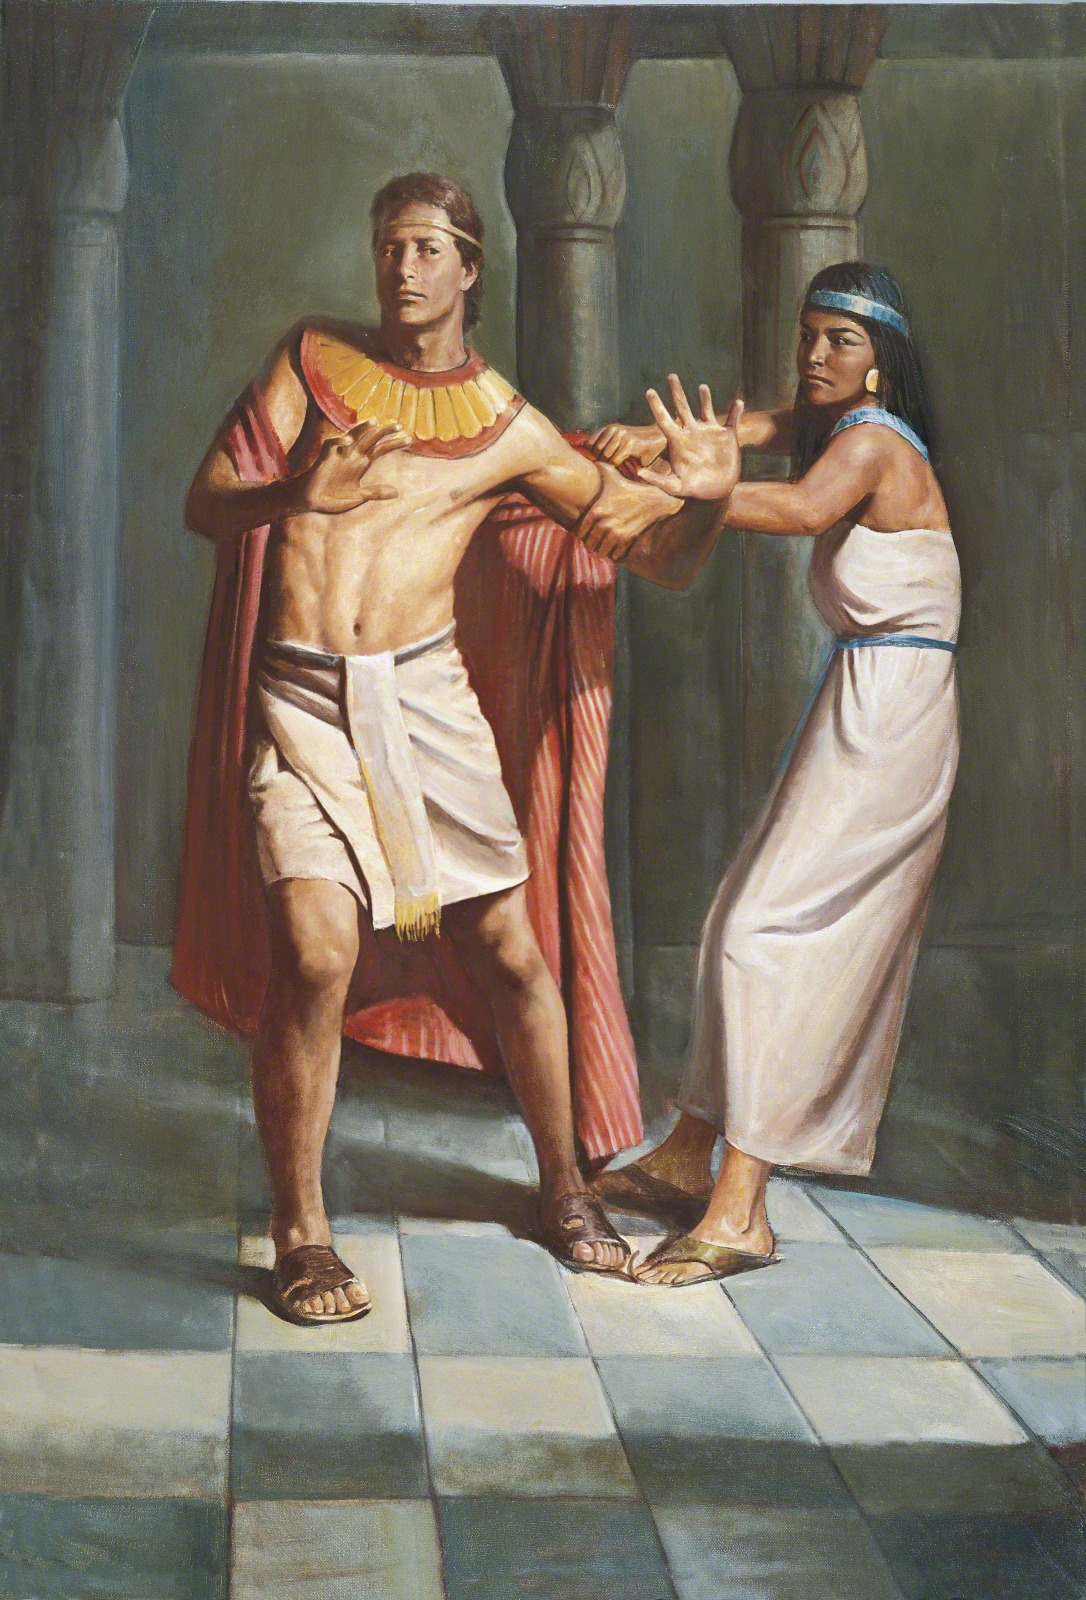 Joseph Und Joseph Joseph Resists Potiphar S Wife Joseph And Potiphar S Wife